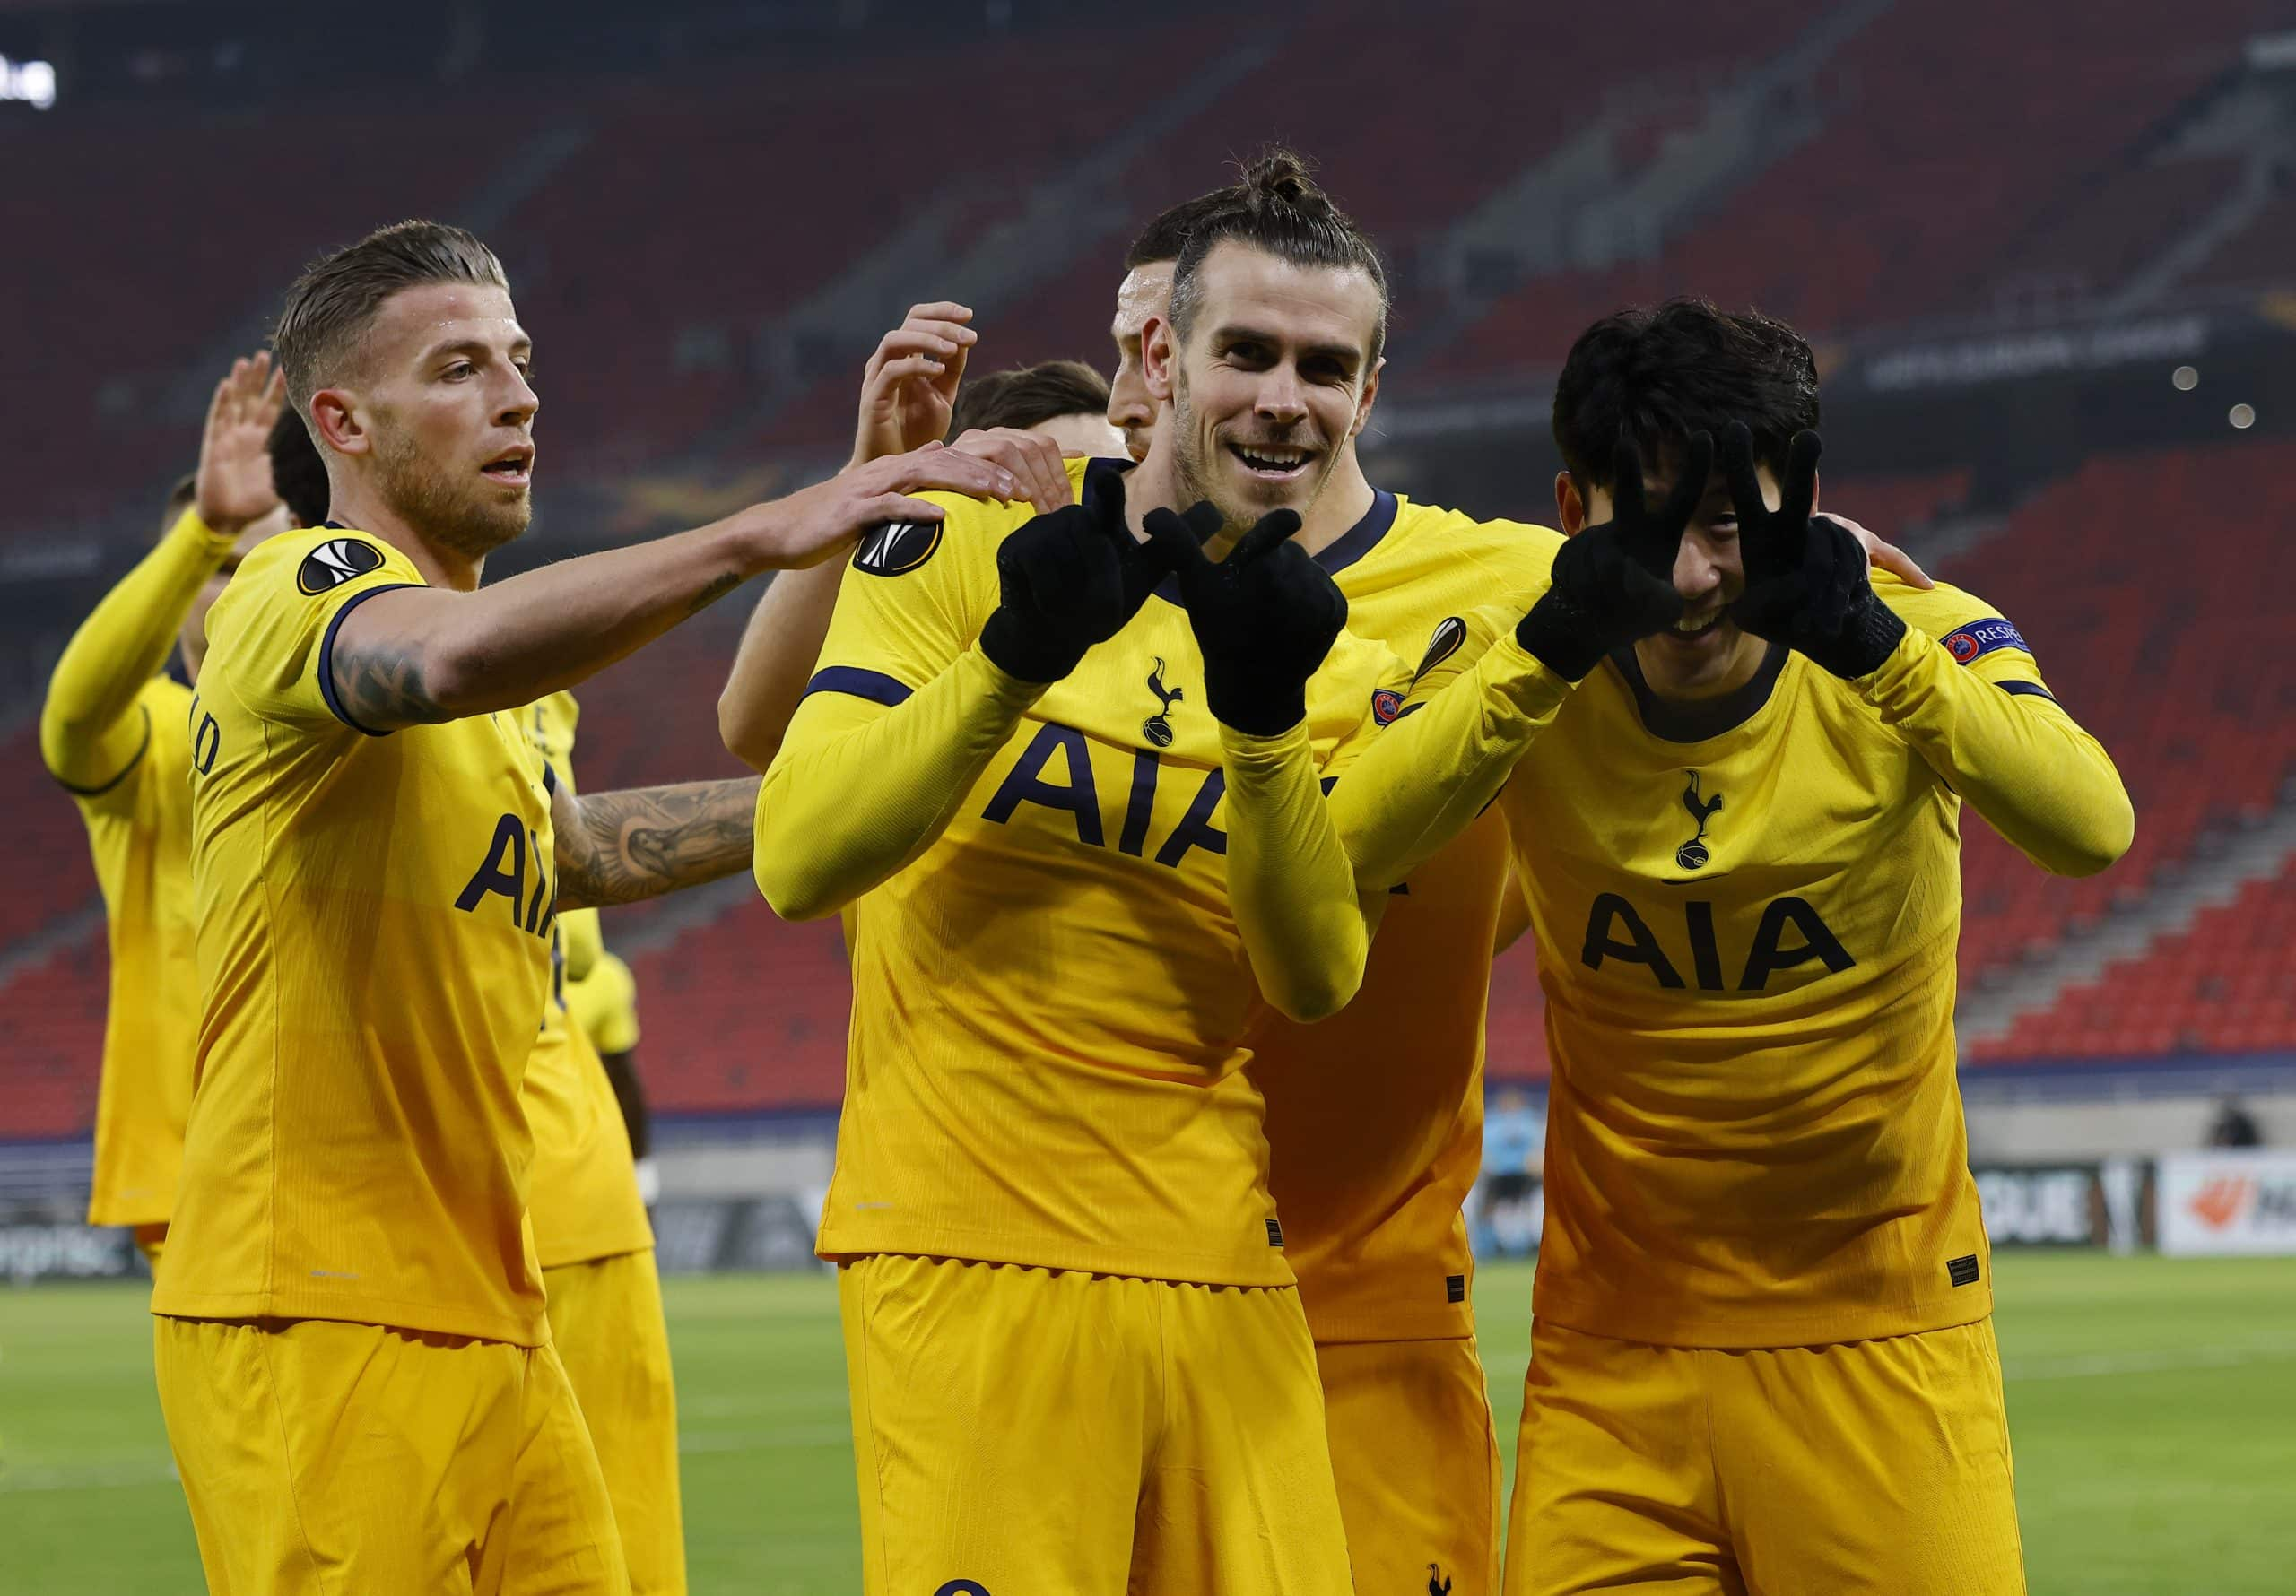 Tottenham Hotspur vs Crystal Palace betting tips: Preview, predictions & odds